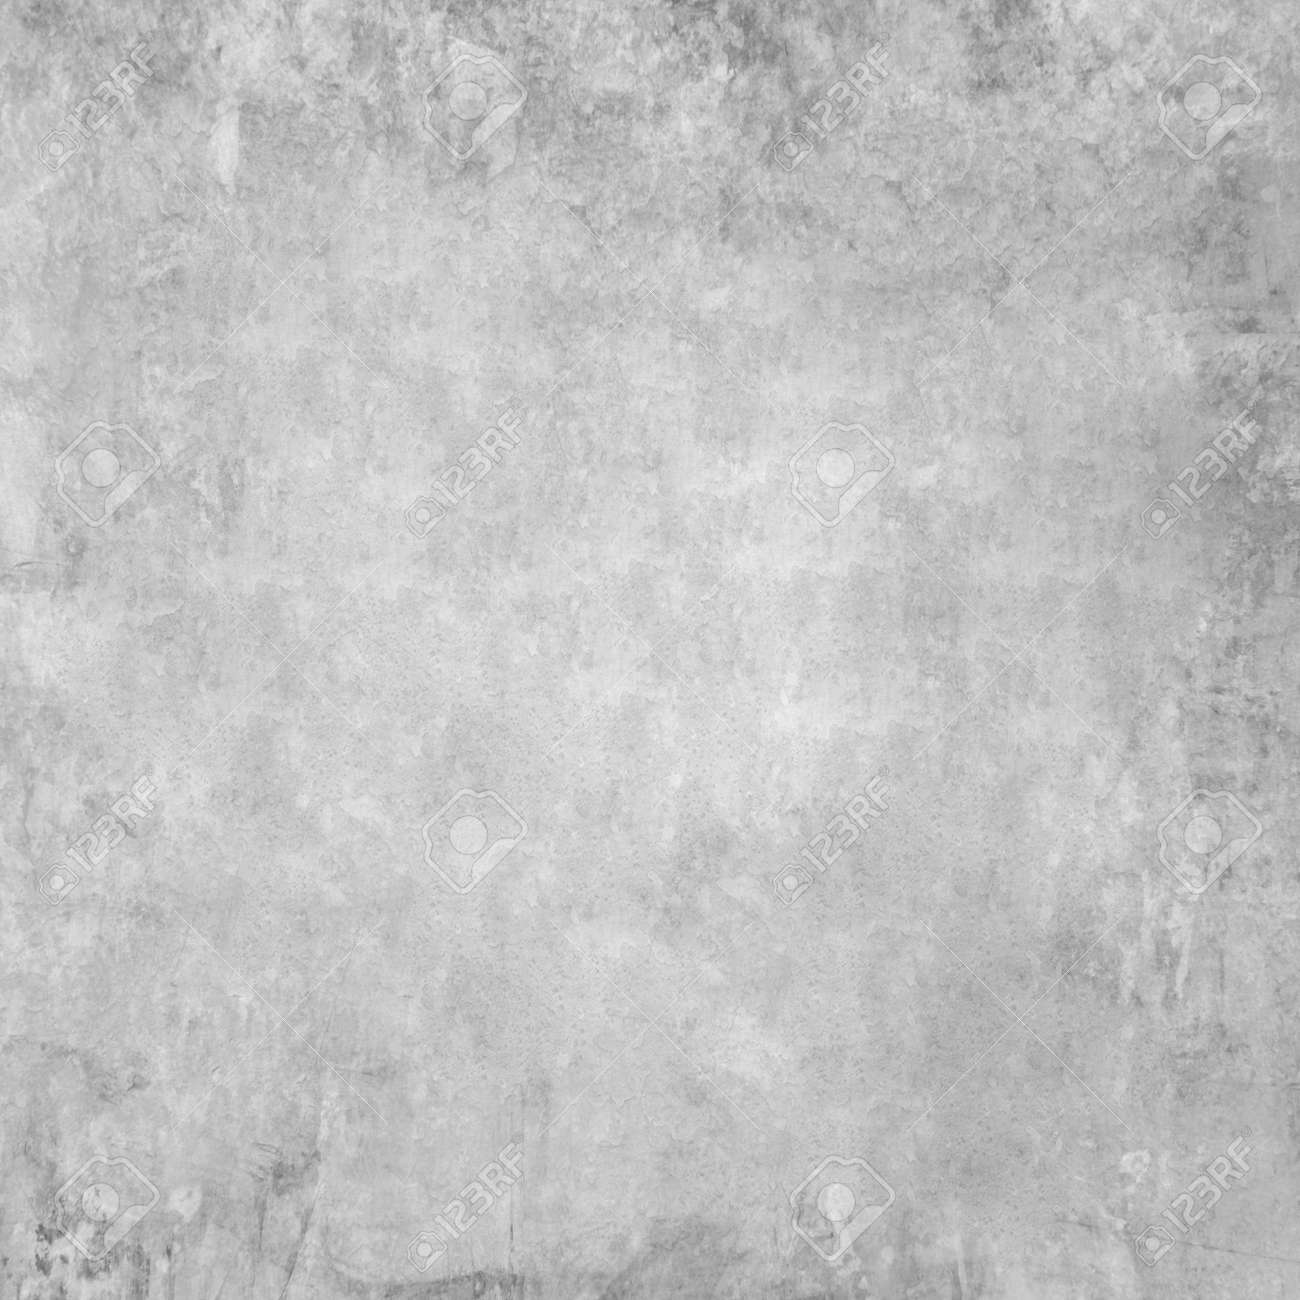 grunge background with space for text or image - 169608157